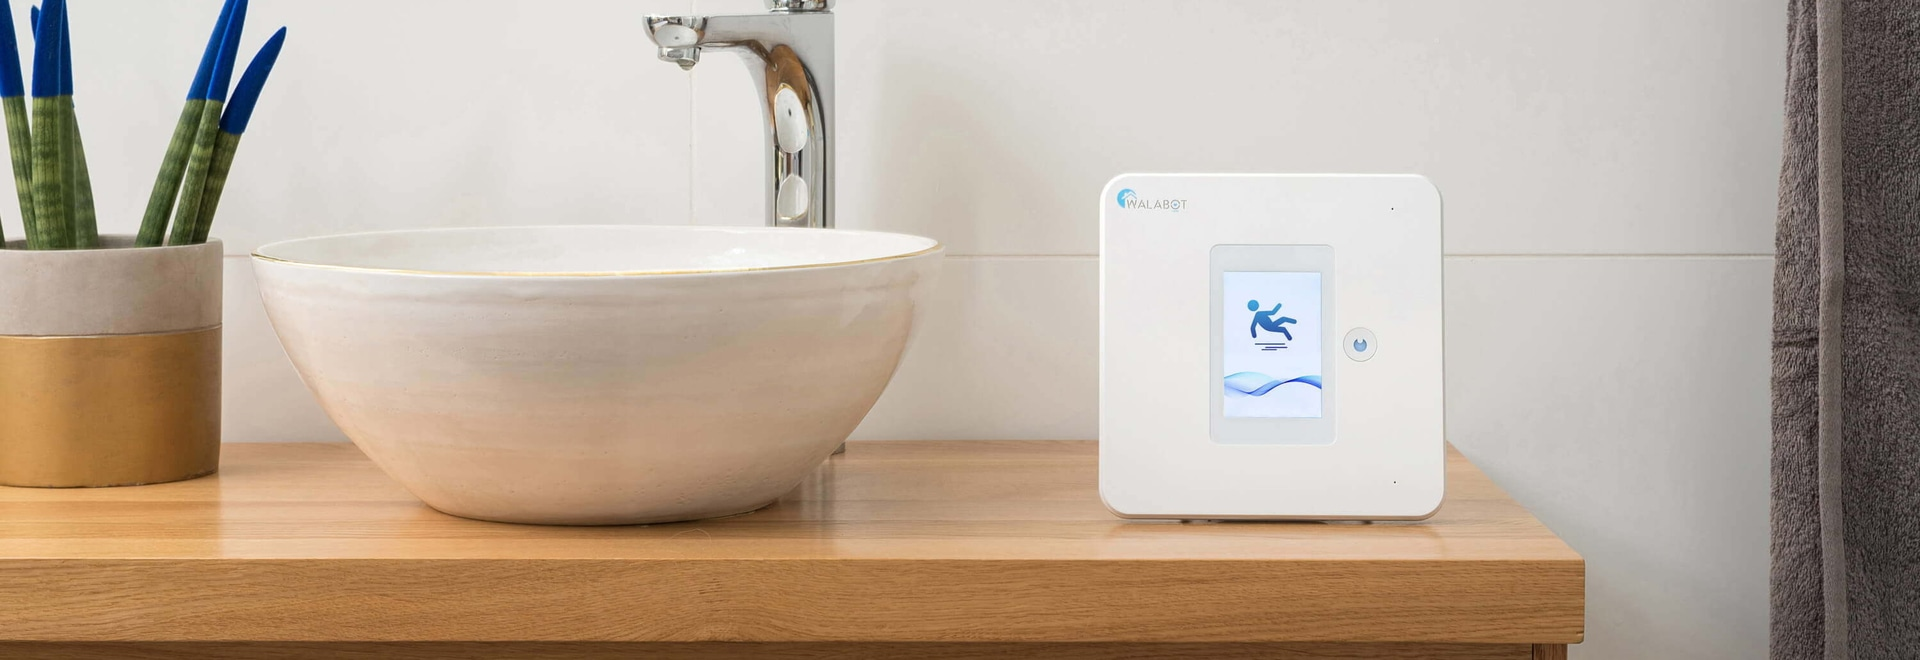 Vayyar Imaging Launches Walabot Home, A Senior Care Smart Home Device for Fall Detection